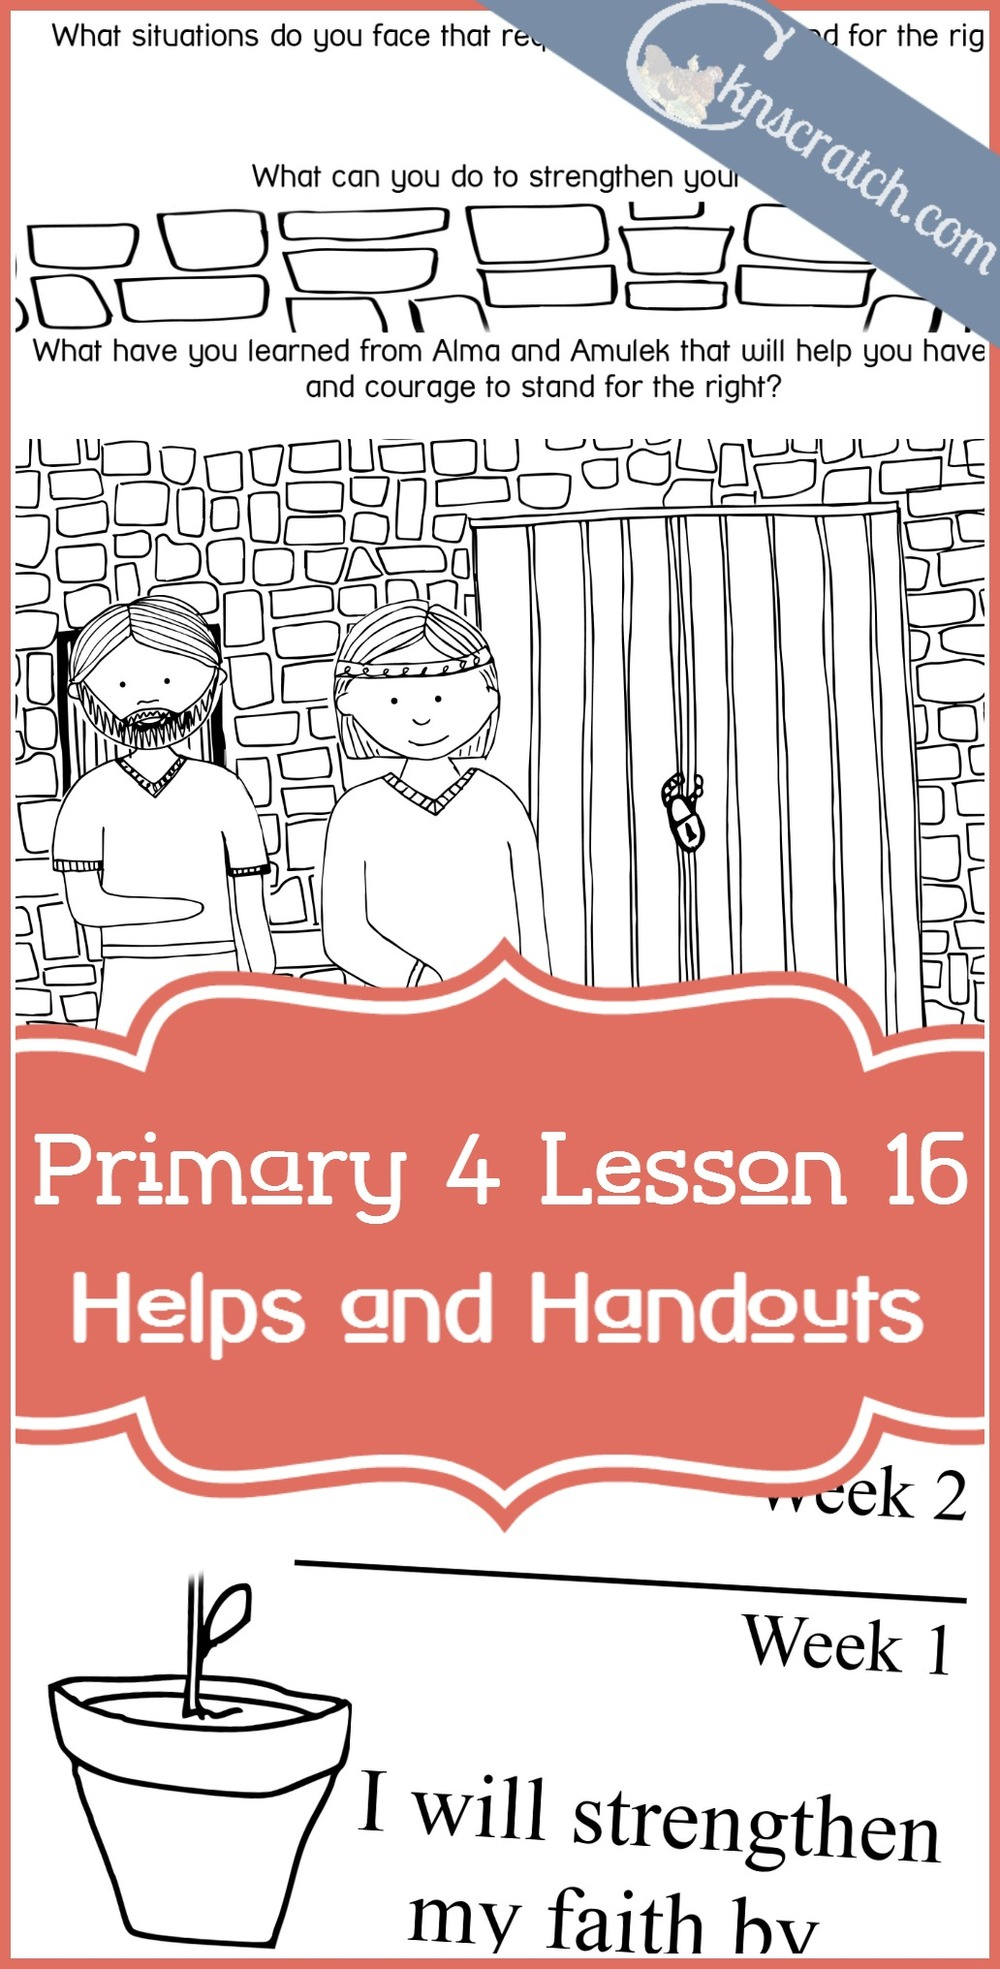 Fabulous LDS helps and handouts for Primary 4 Lesson 16: Alma and Amulek in Prison